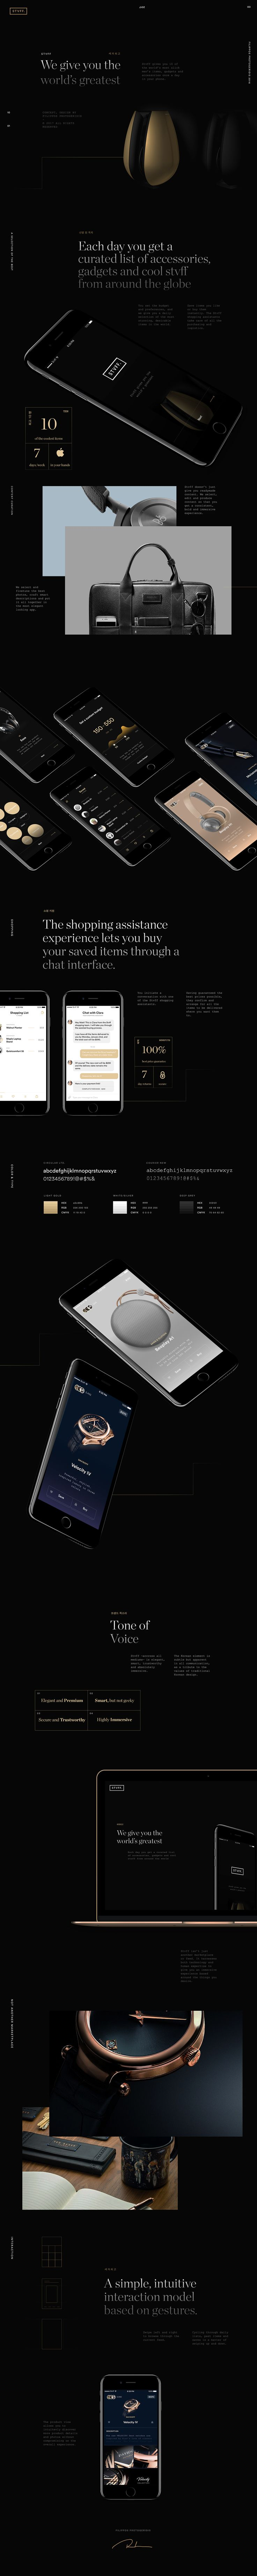 Stvff - We give you the World's Greatest on Behance